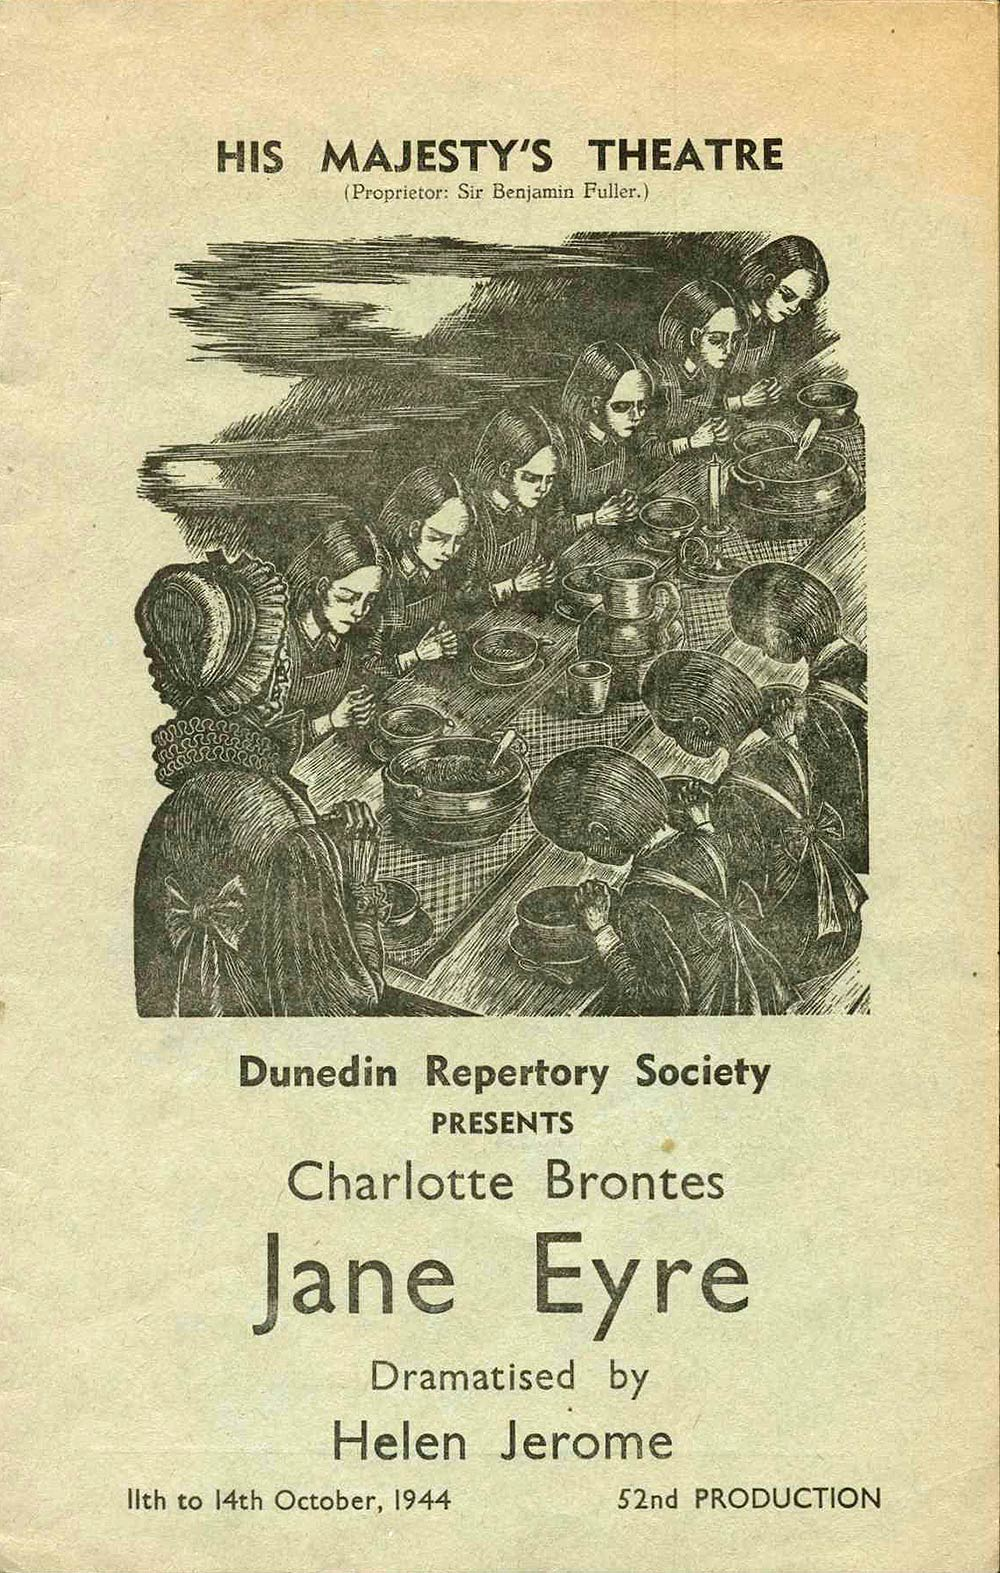 <em>Jane Eyre</em>. Charlotte Bronte; dramatized by Helen Jerome. (Dunedin Repertory Society). His Majesty's Theatre, Dunedin, Oct. 11-14, 1944.